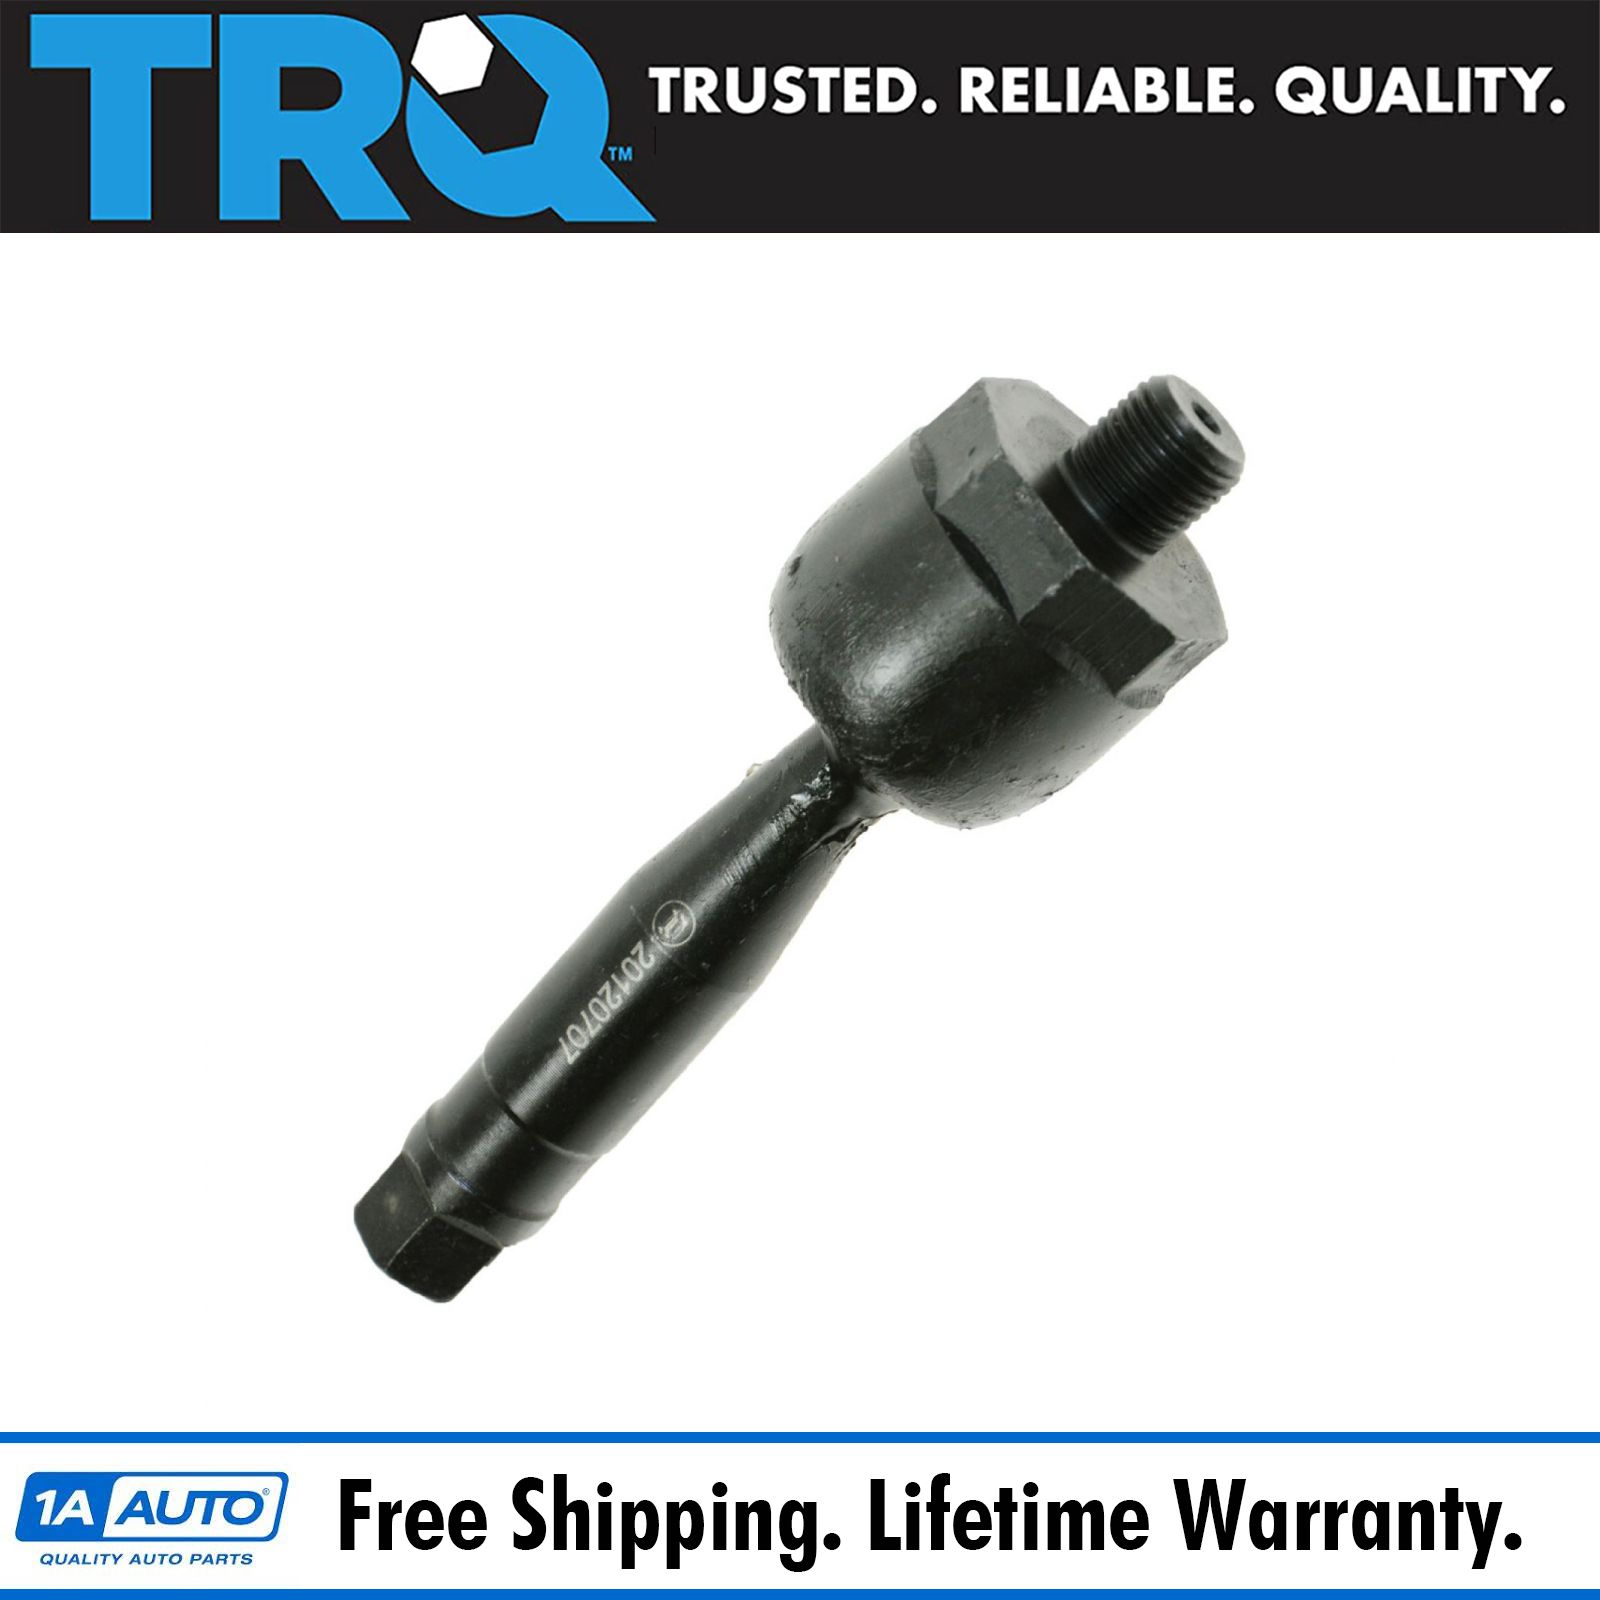 Front Inner /& Outer Tie Rod End Set Kit LH or RH for A4 A6 A8 S6 S8 VW Passat